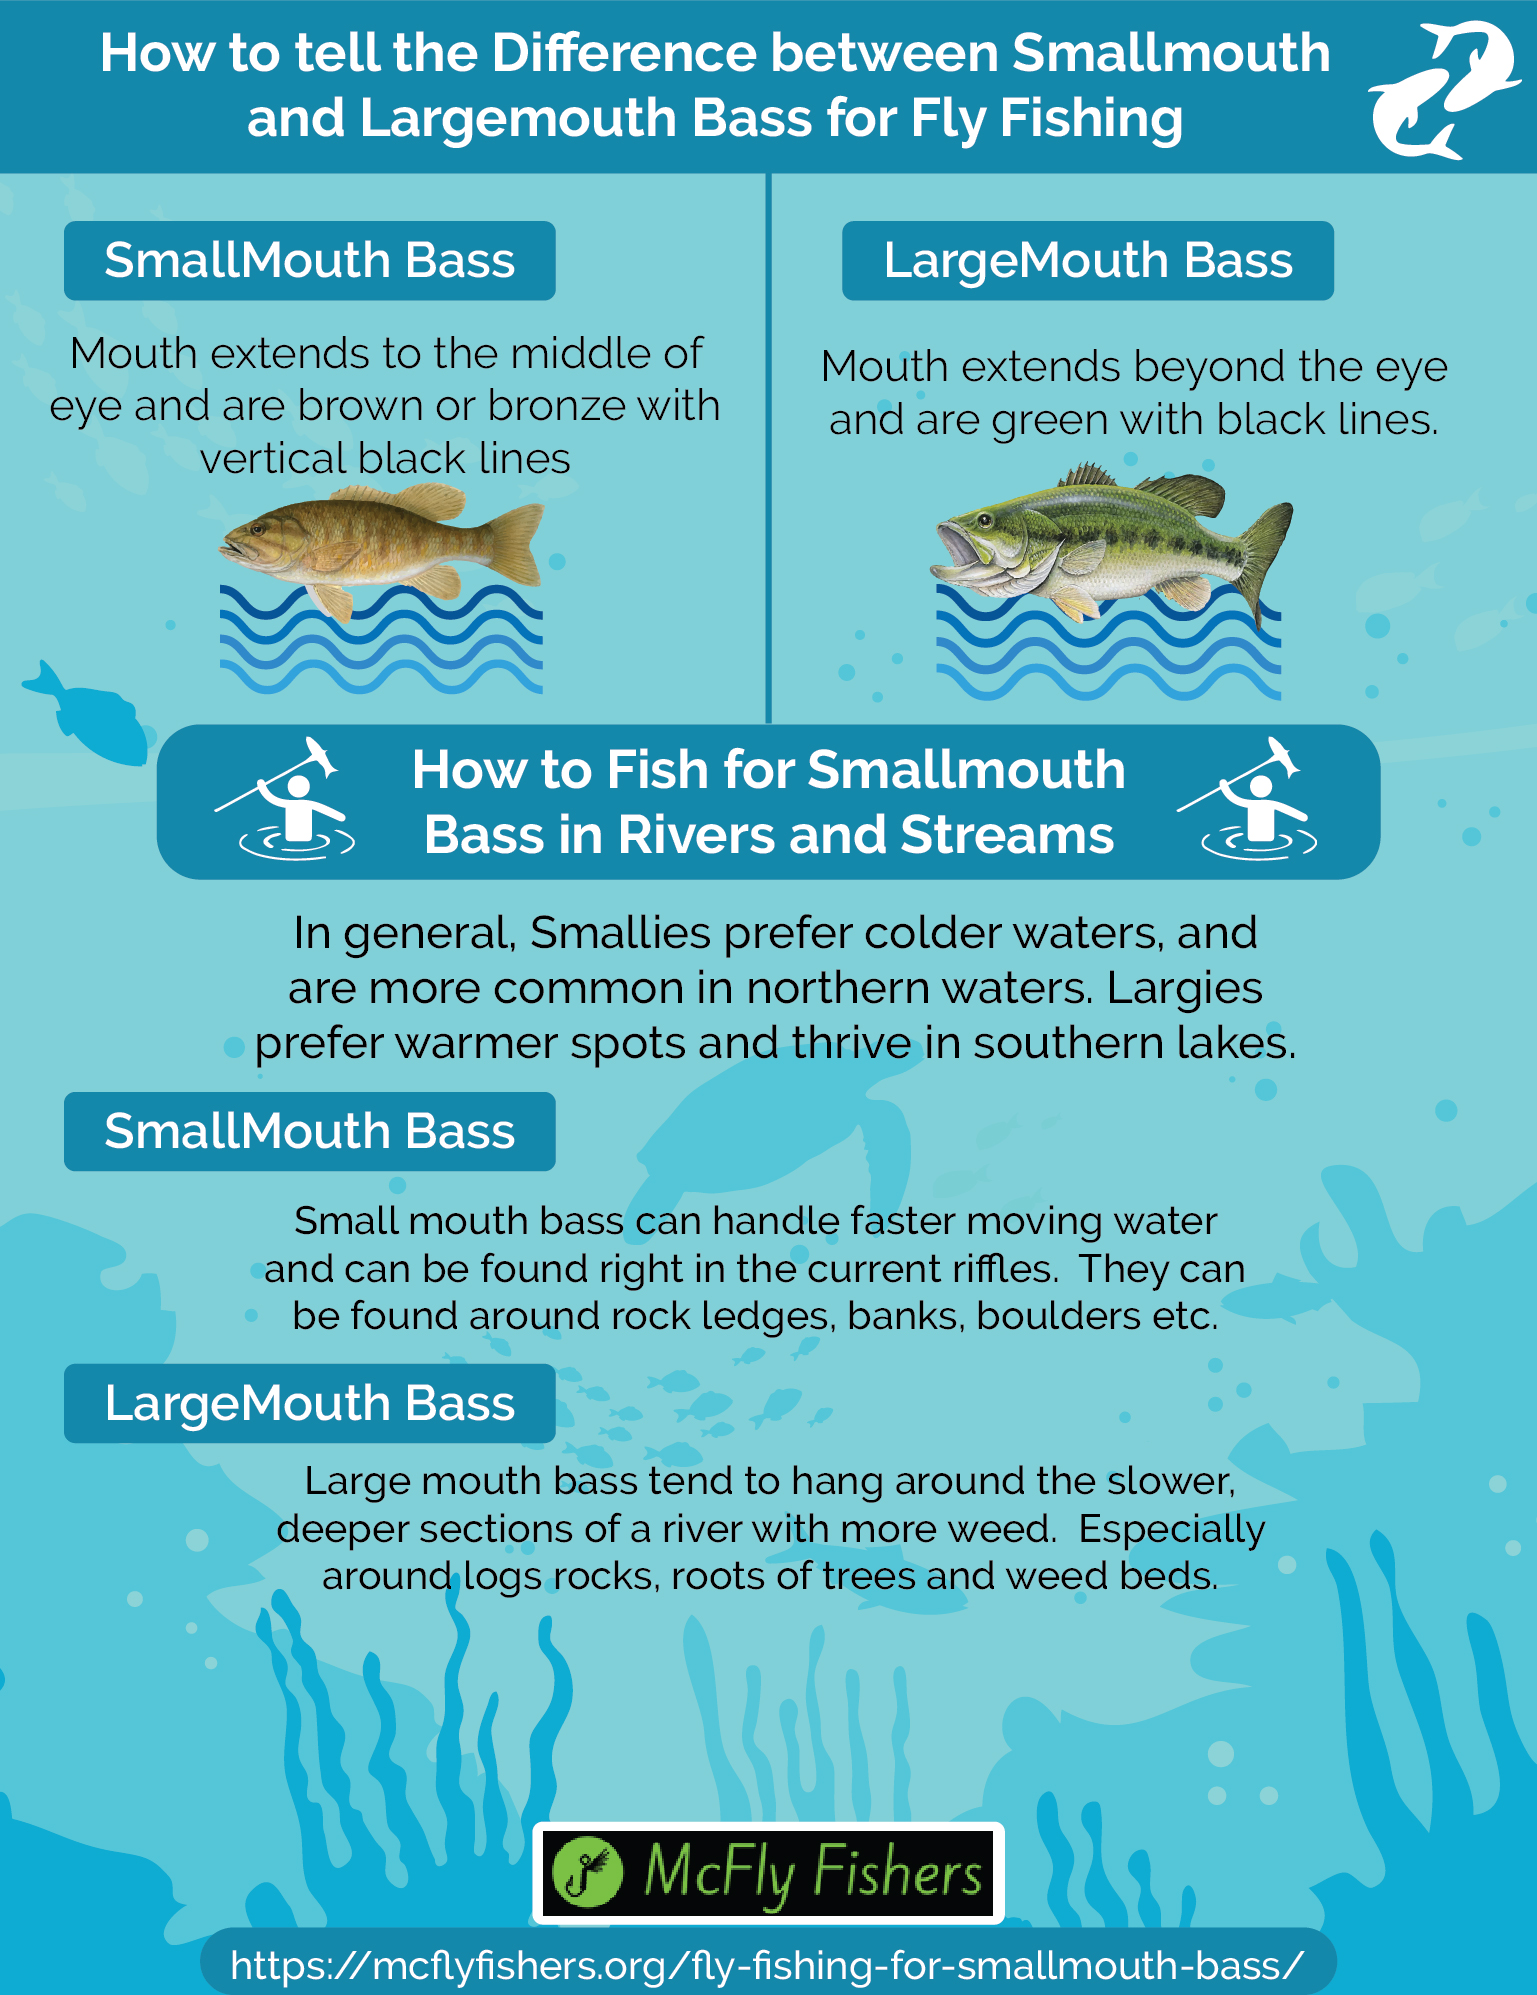 Fly Fishing for Smallmouth Bass in Lakes & Rivers [Infographic]